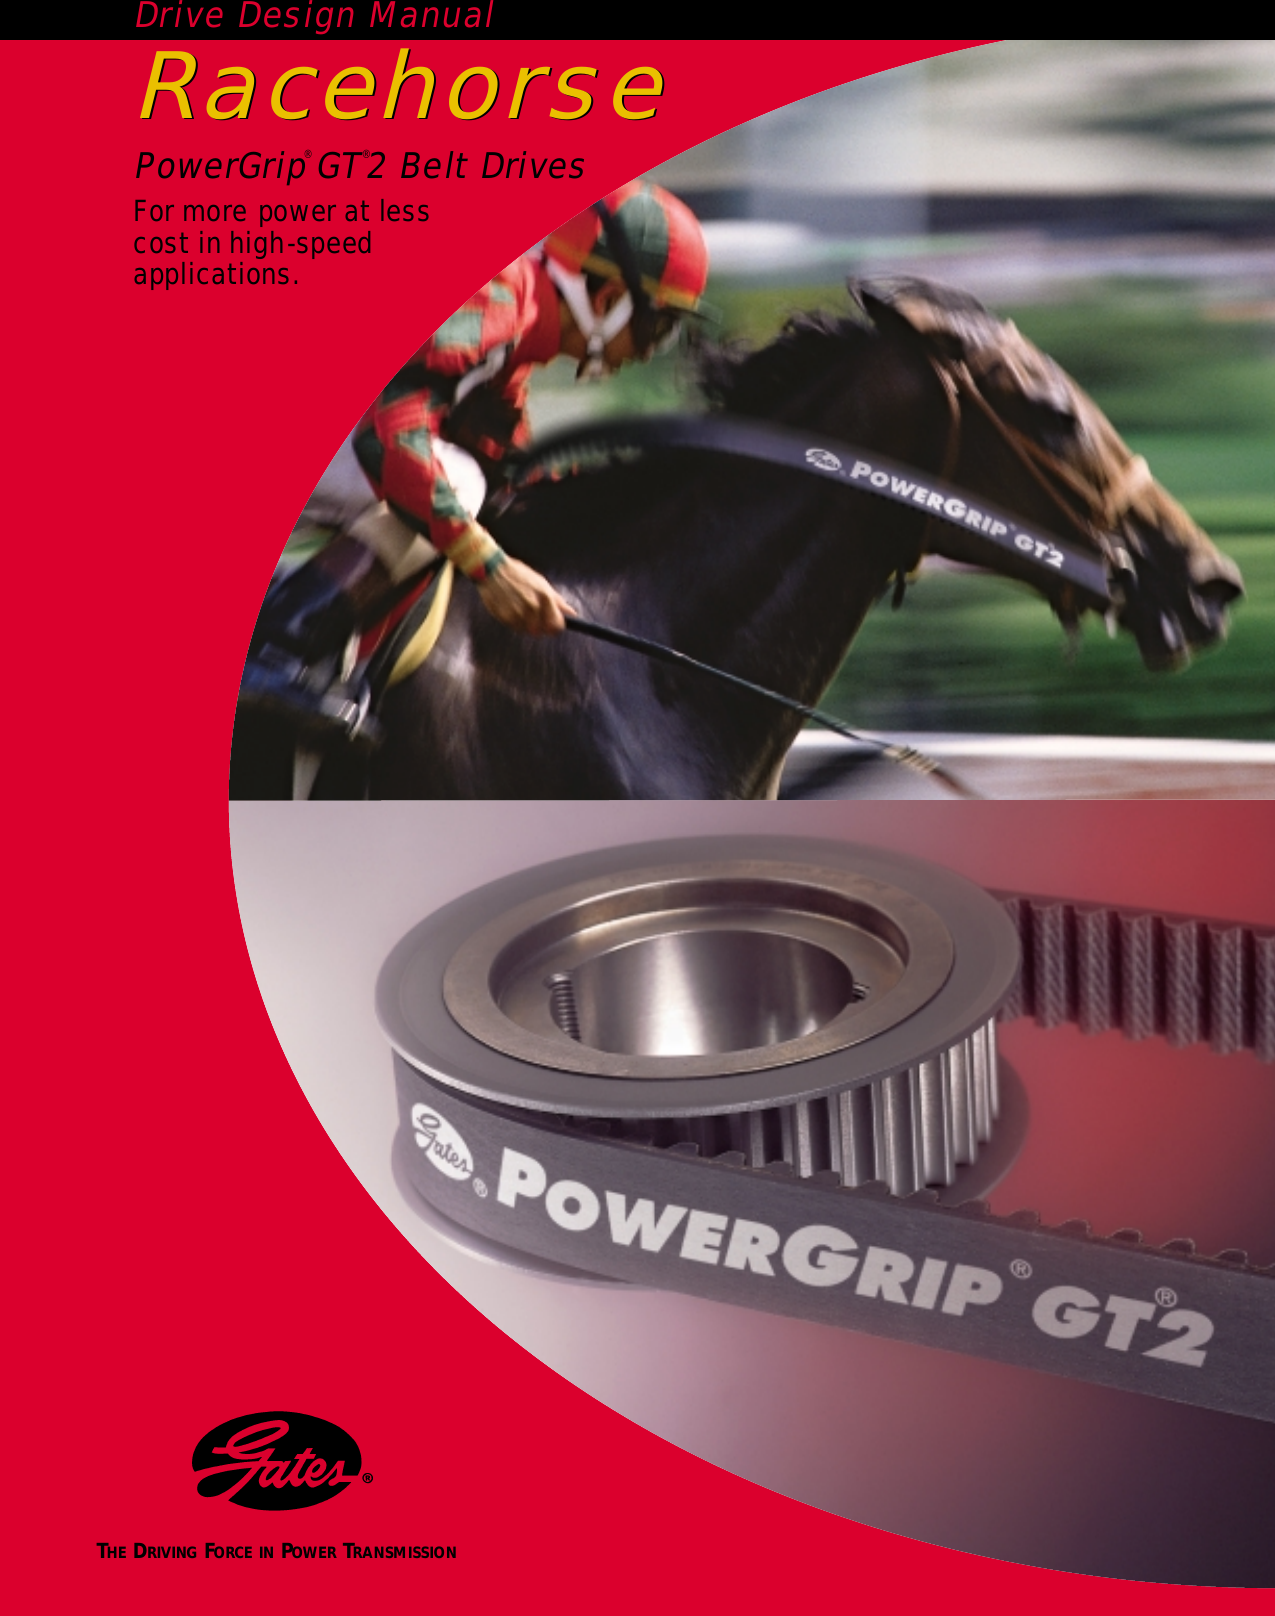 gates powergrip gt2 design manual